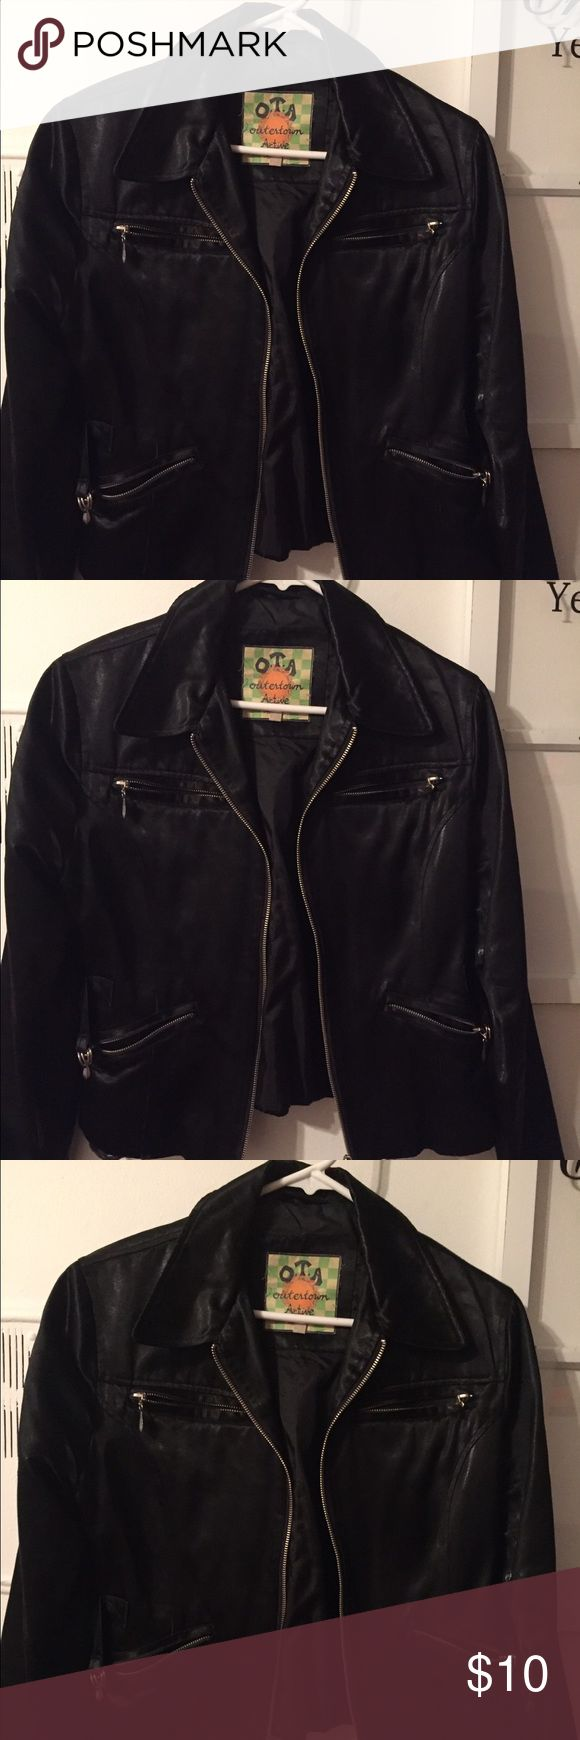 Black short zippered jacket in fair condition. Many zippers on jacket; frayed on inside bottom of jacket; had it 5 yrs.  very cool looking O.T.A Outertown Active Stuff Jackets & Coats Jean Jackets